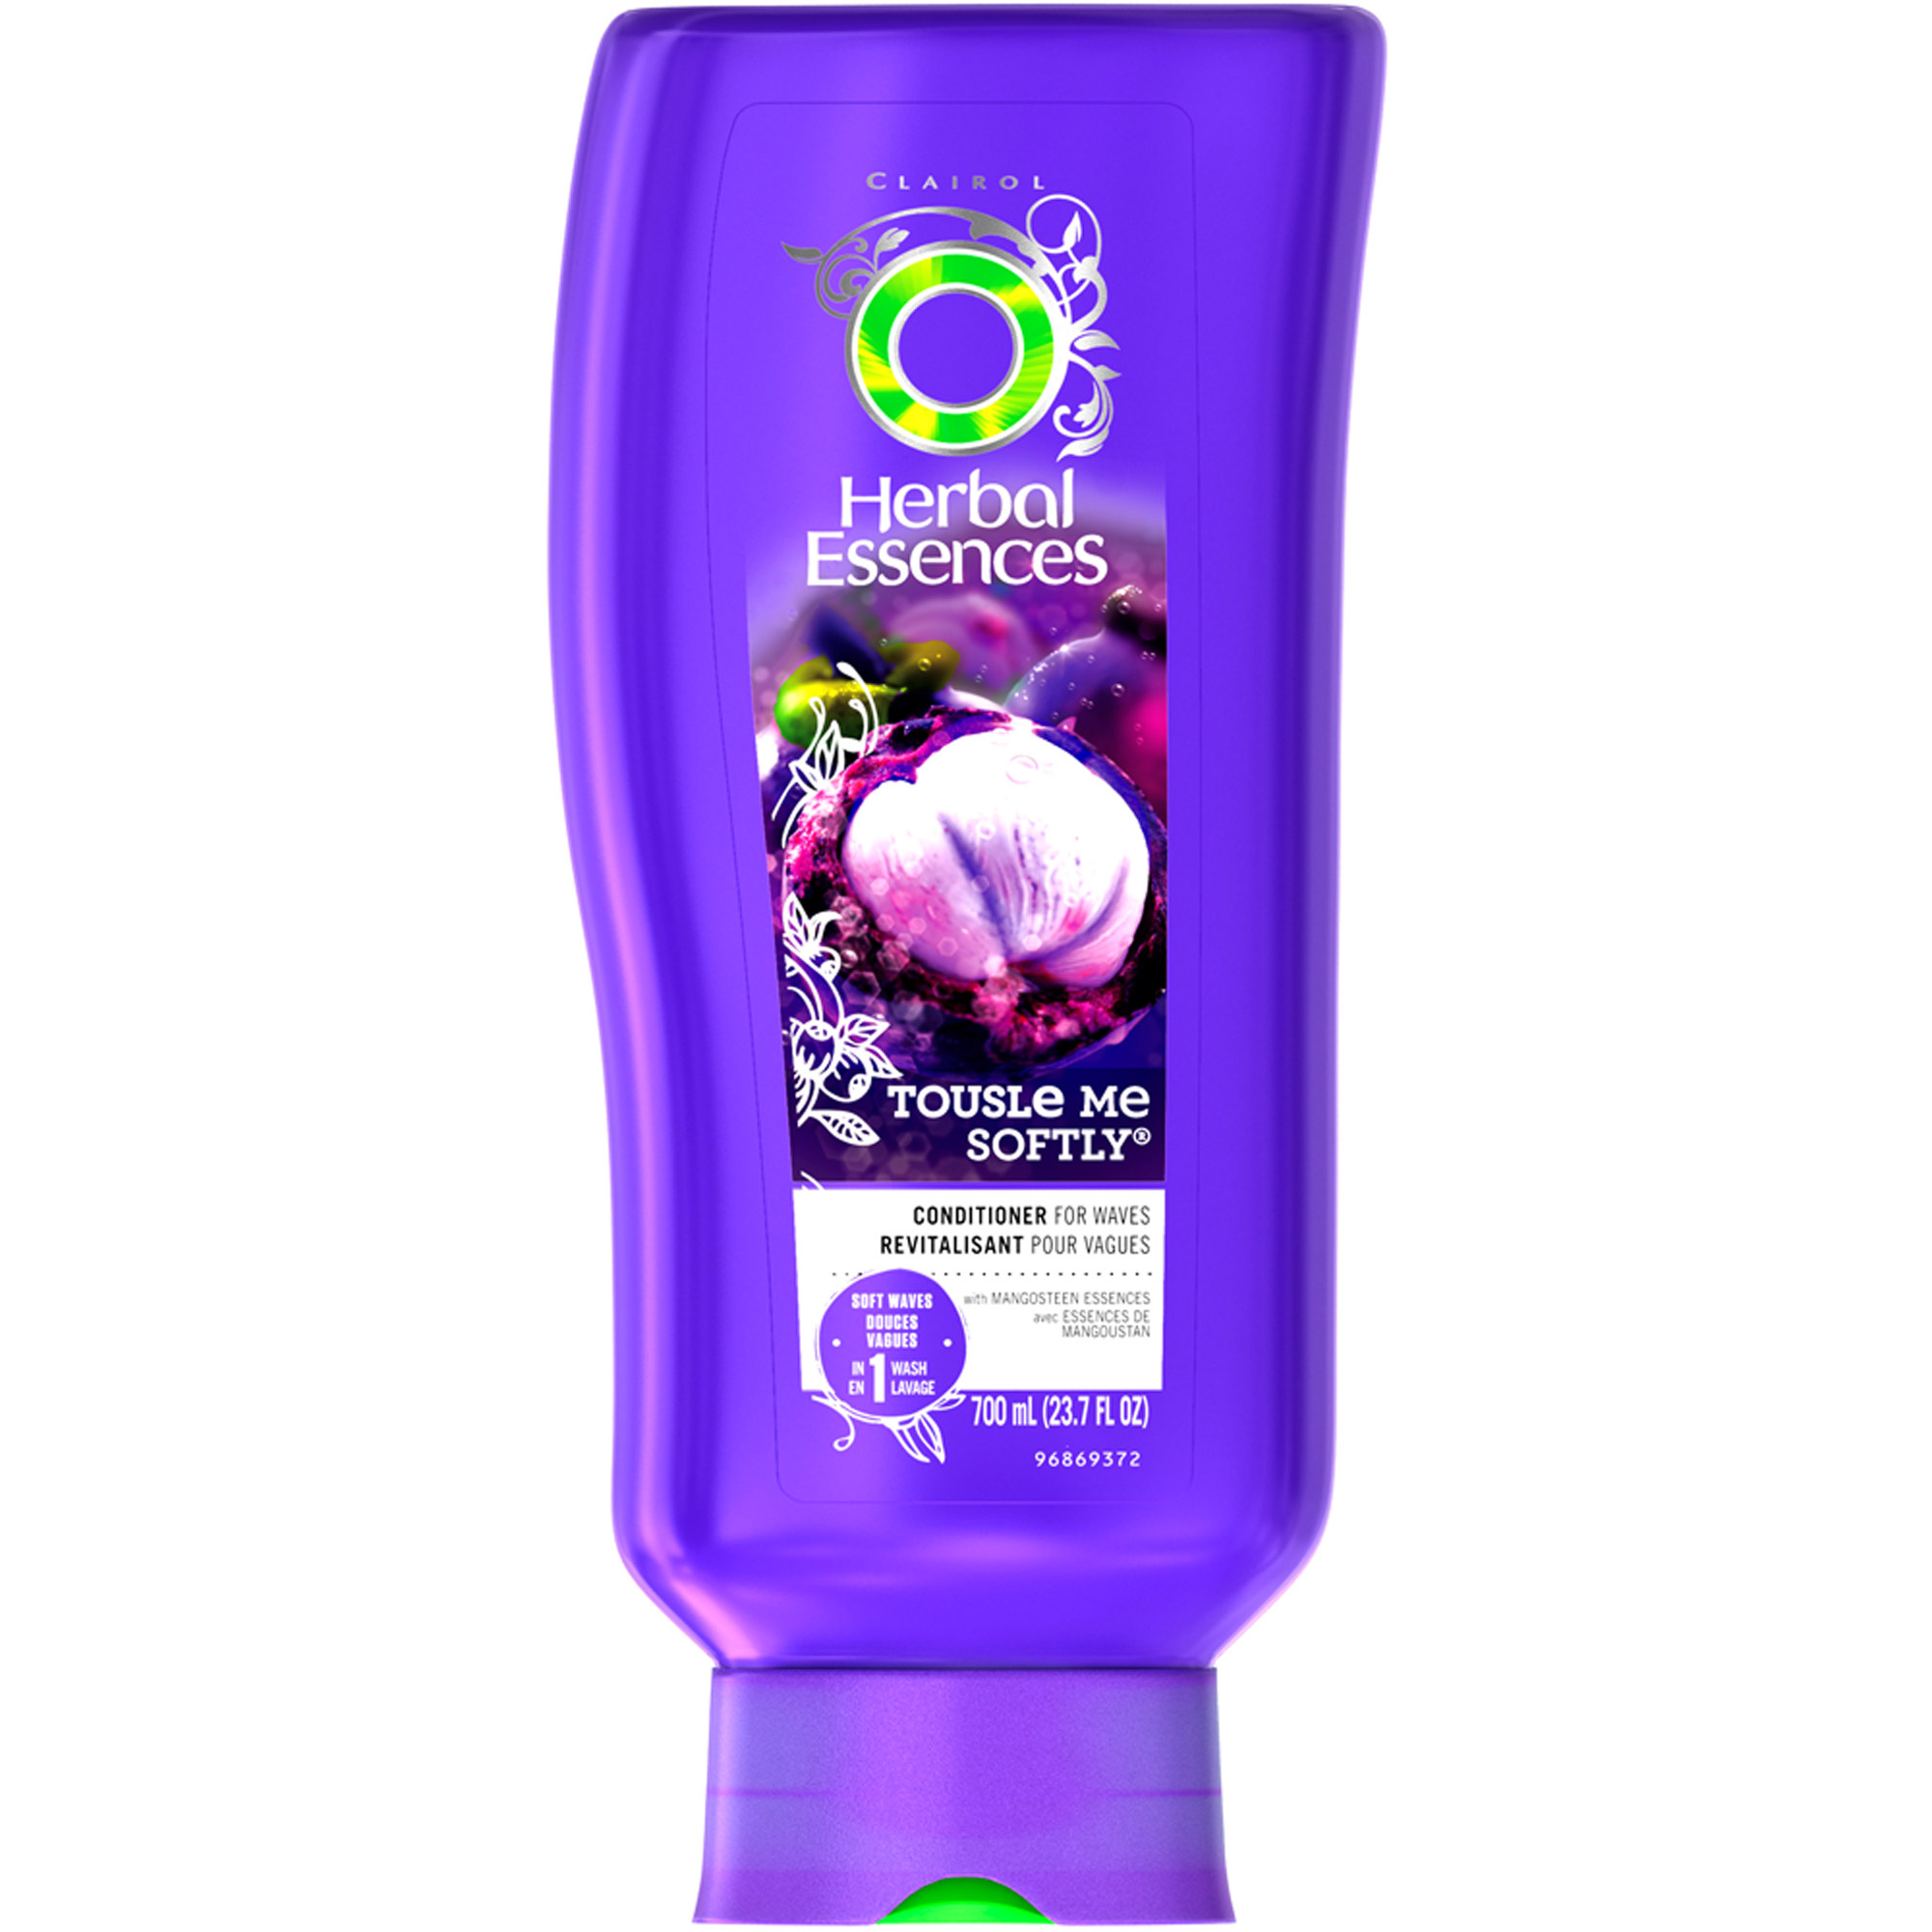 Herbal Essences Tousle Me Softly Hair Conditioner for a Tousled Look 23.7 Fl Oz